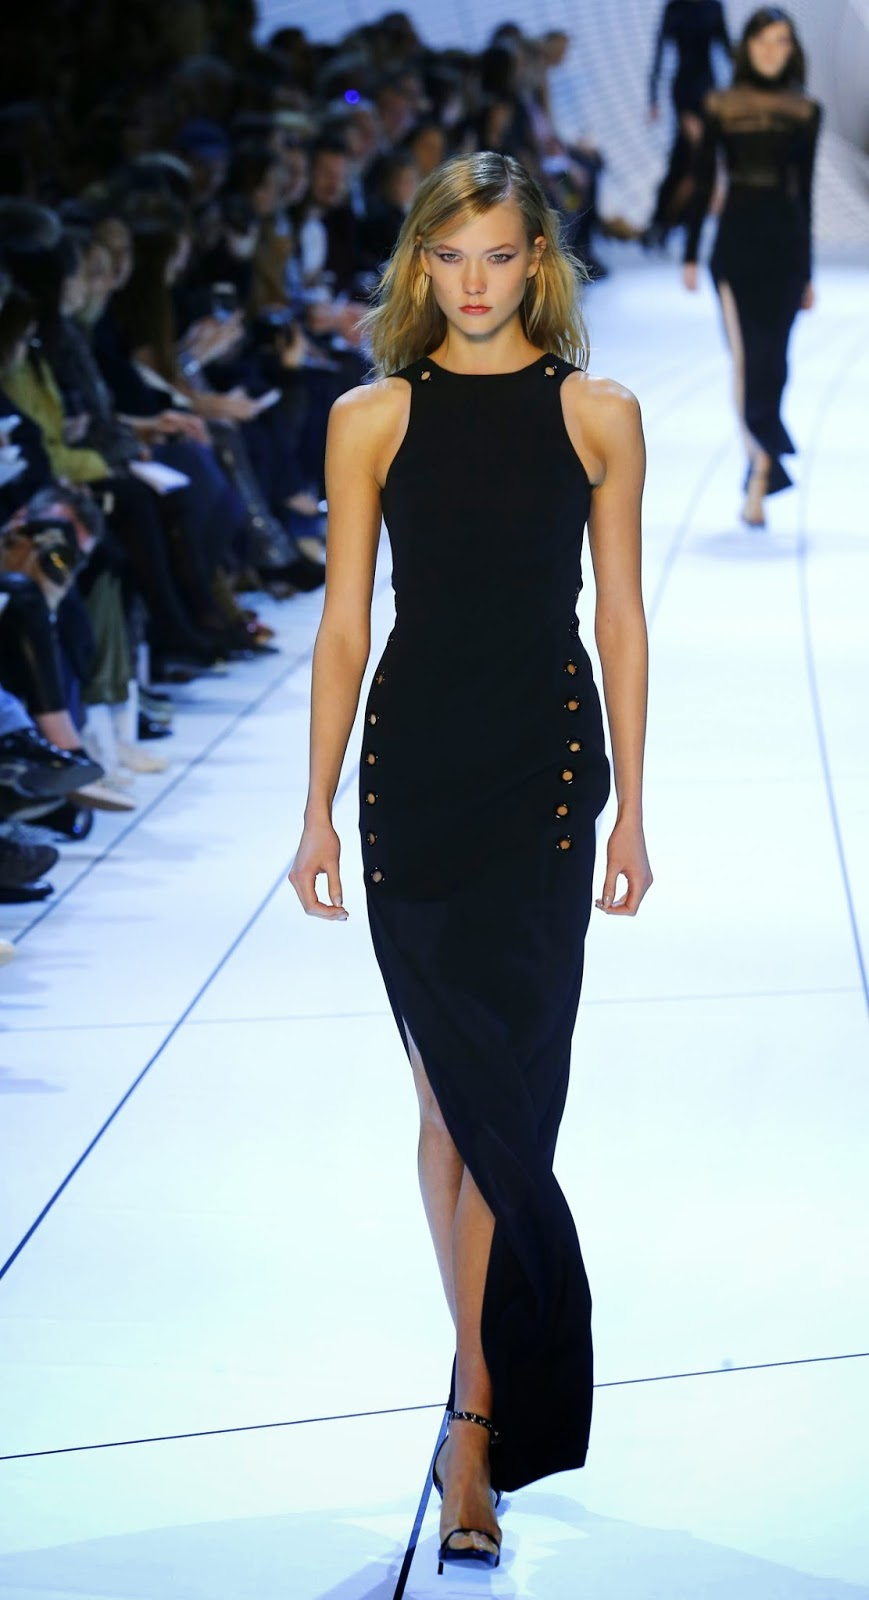 Fashion Model @ Karlie Kloss At Mugler Fashion Show In Paris